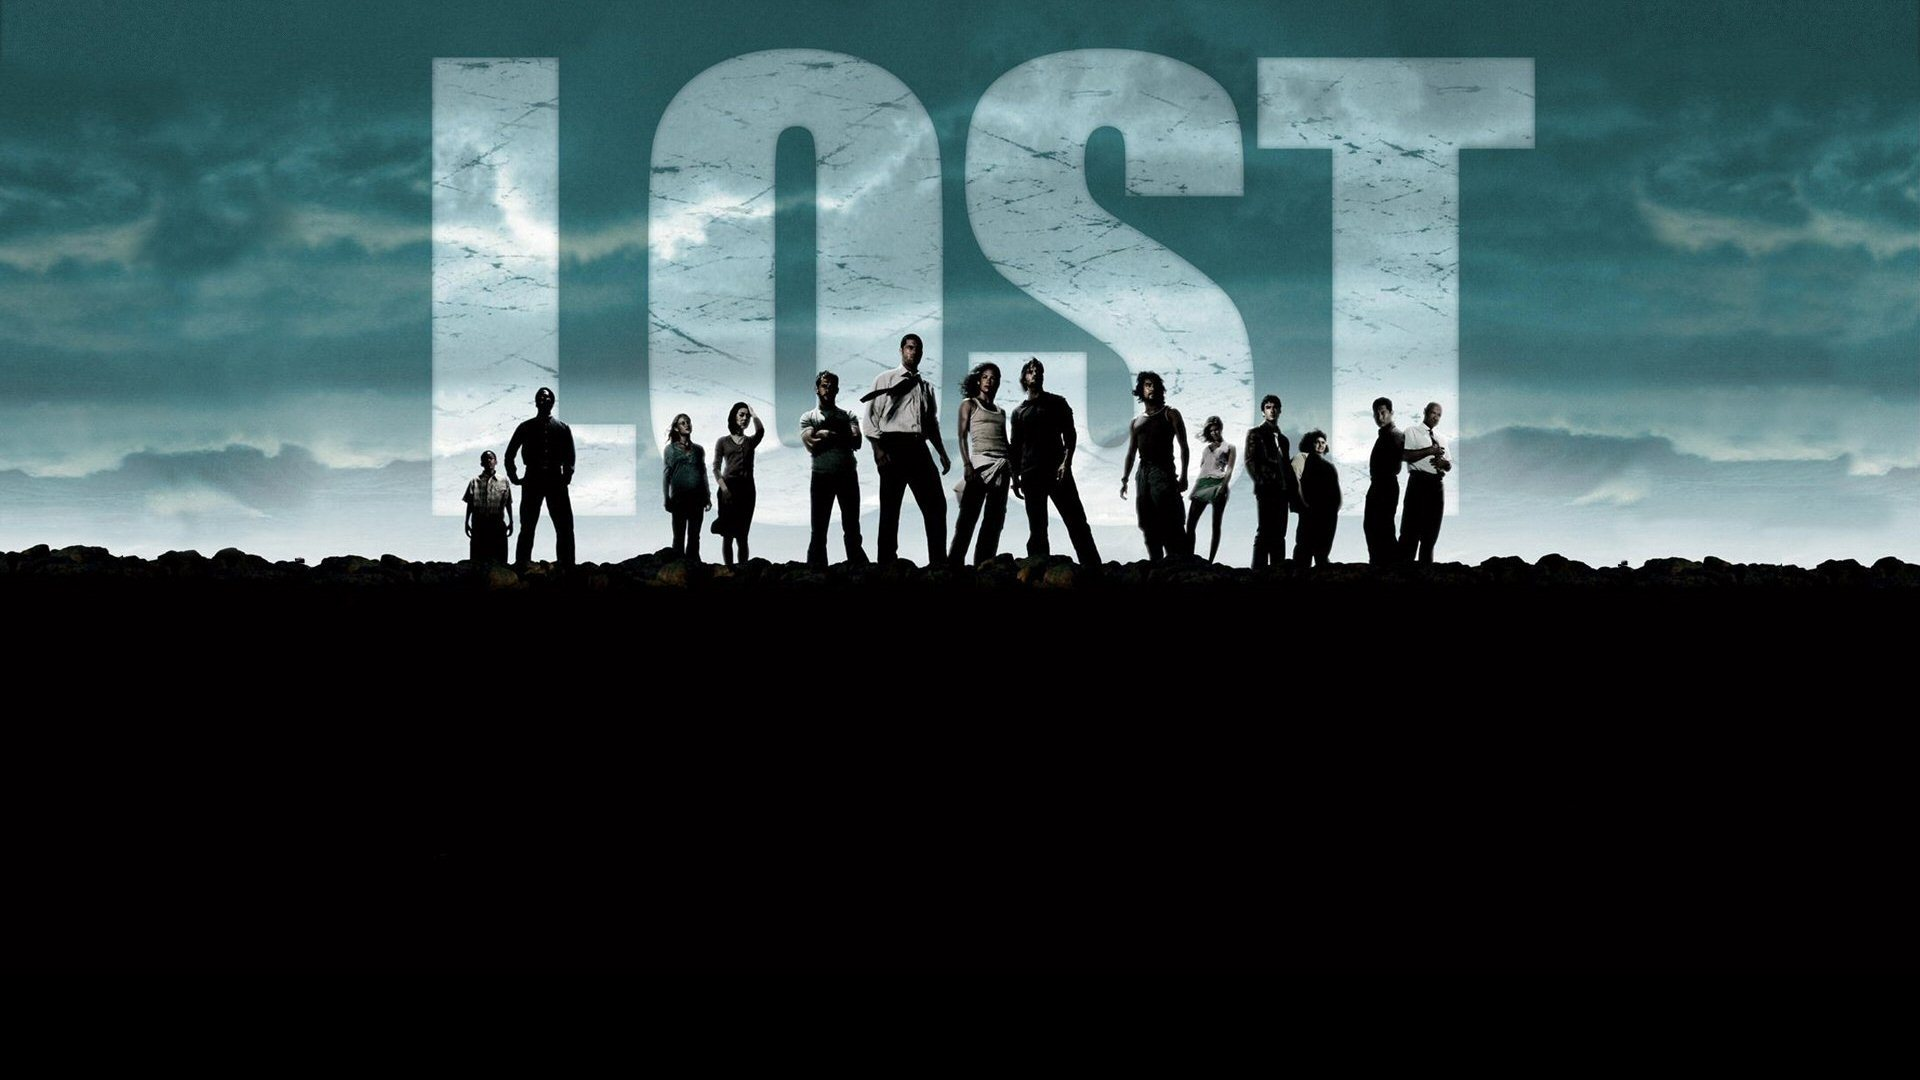 silhouettes Lost (TV Series) HD Wallpaper